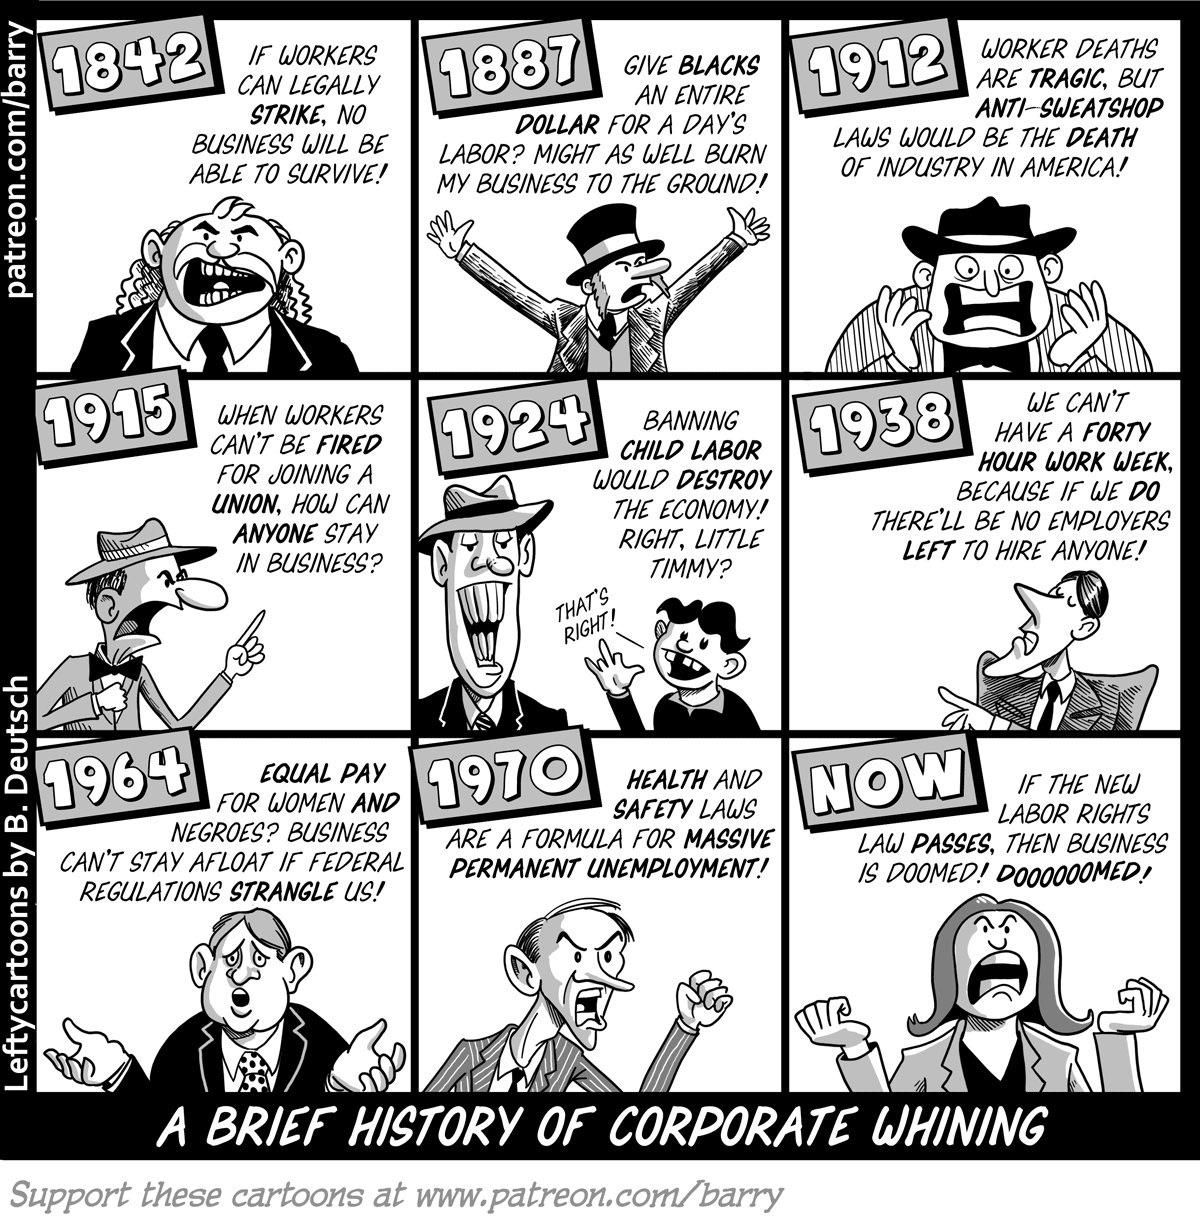 Comic on Corporate Whining